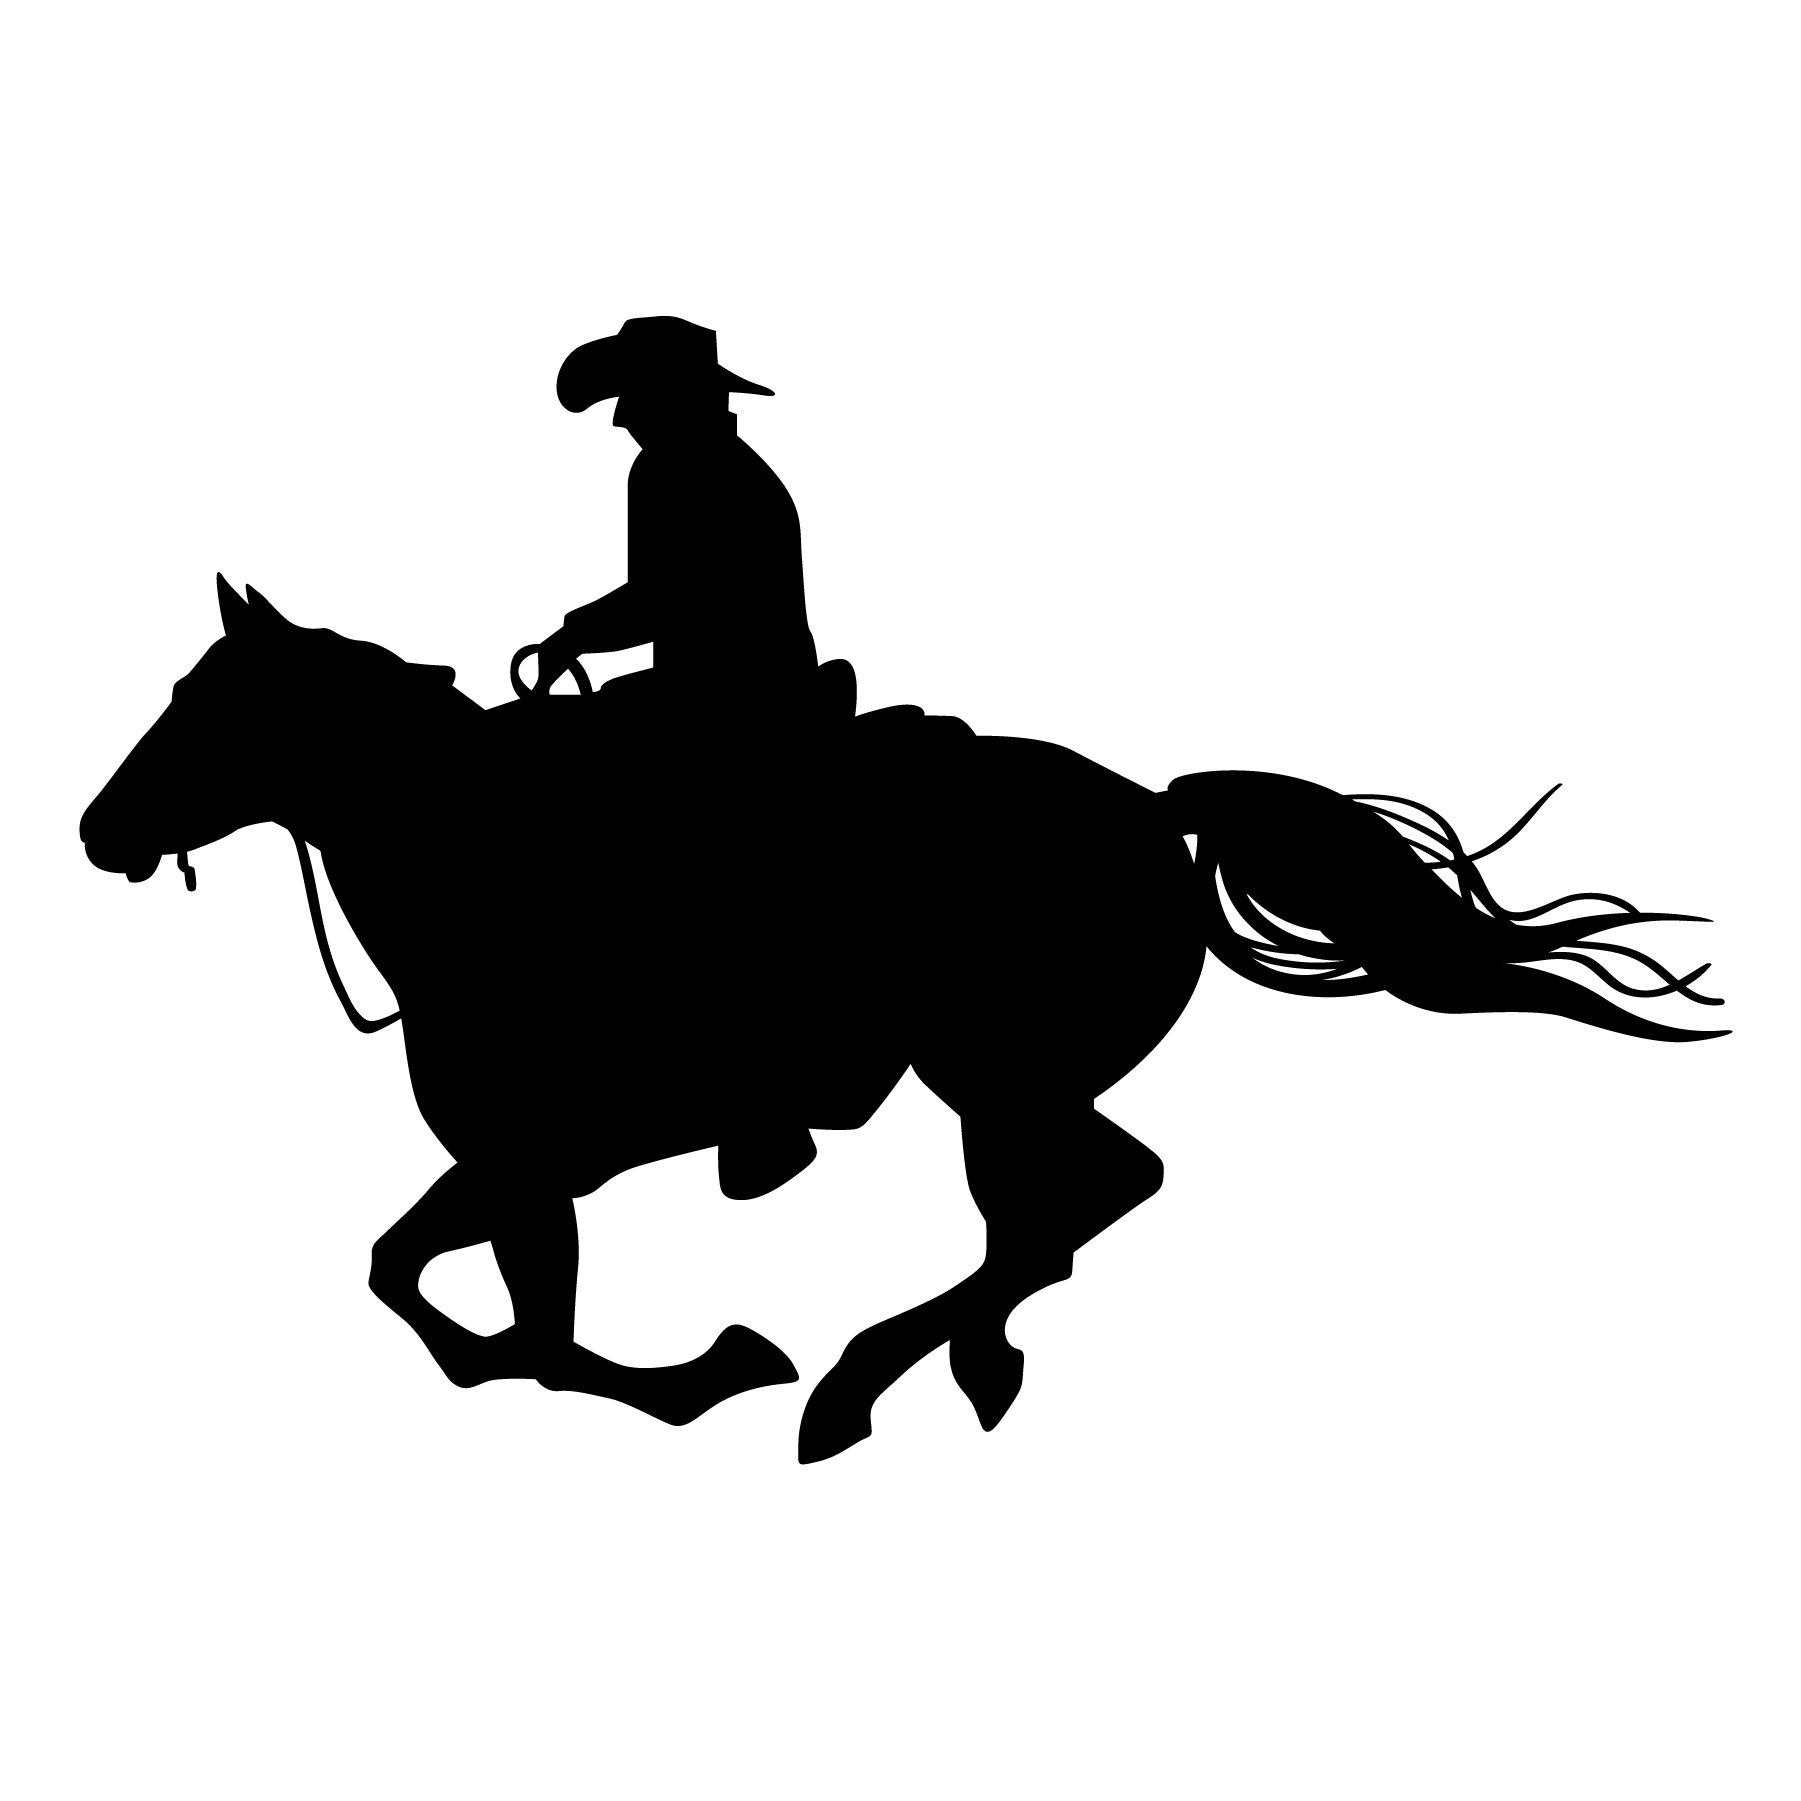 riding a horse silhouette